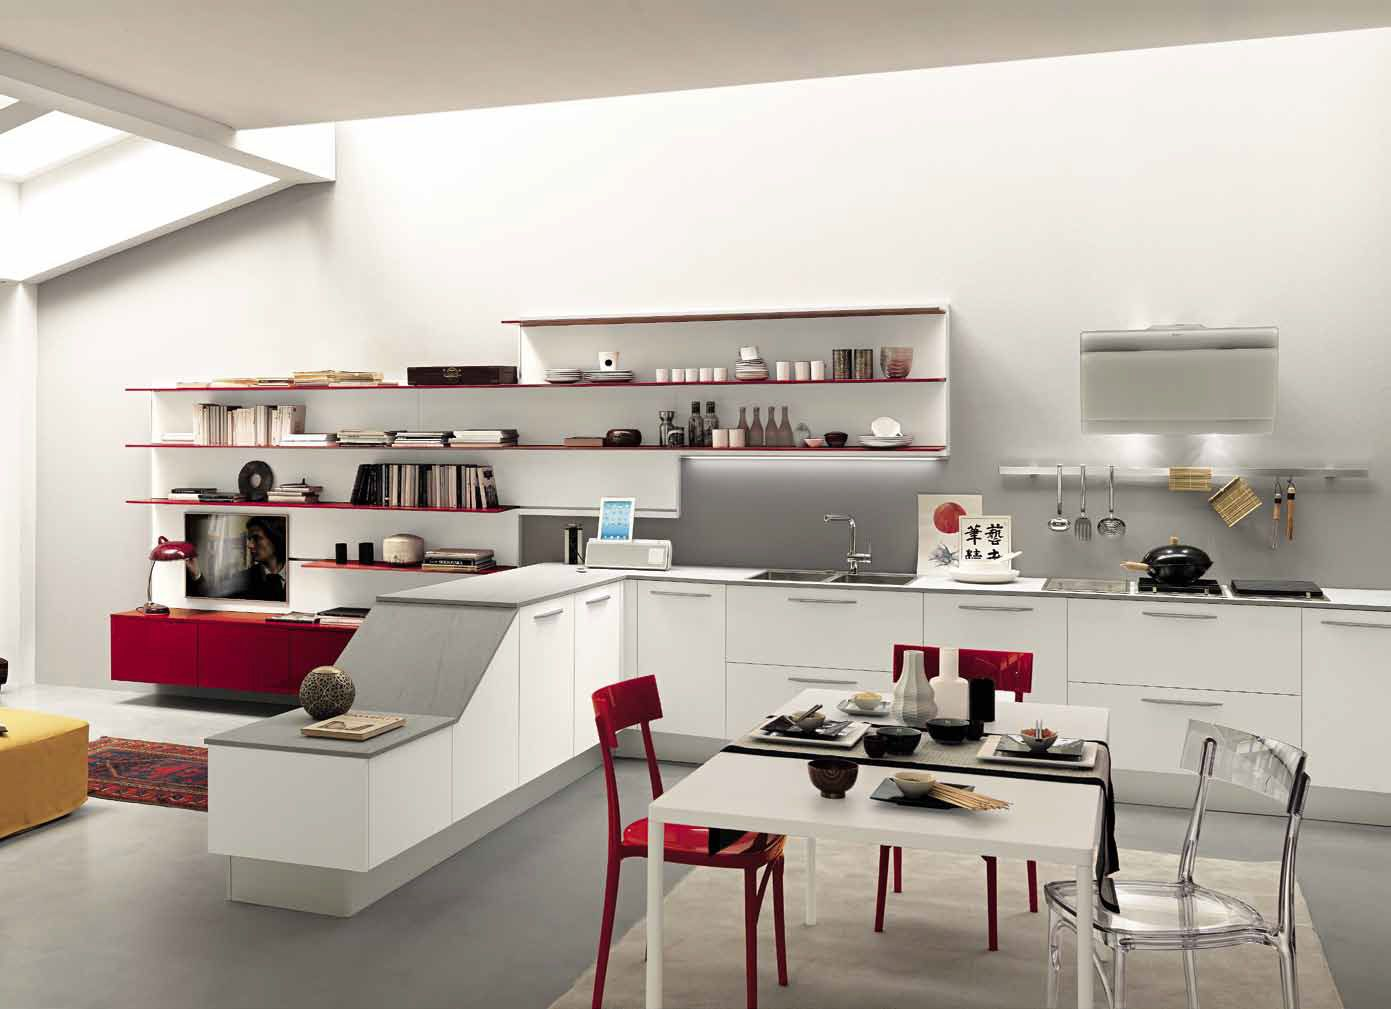 Red Cabinets, Red Shelves, Red Kitchen, White Cabinet ...